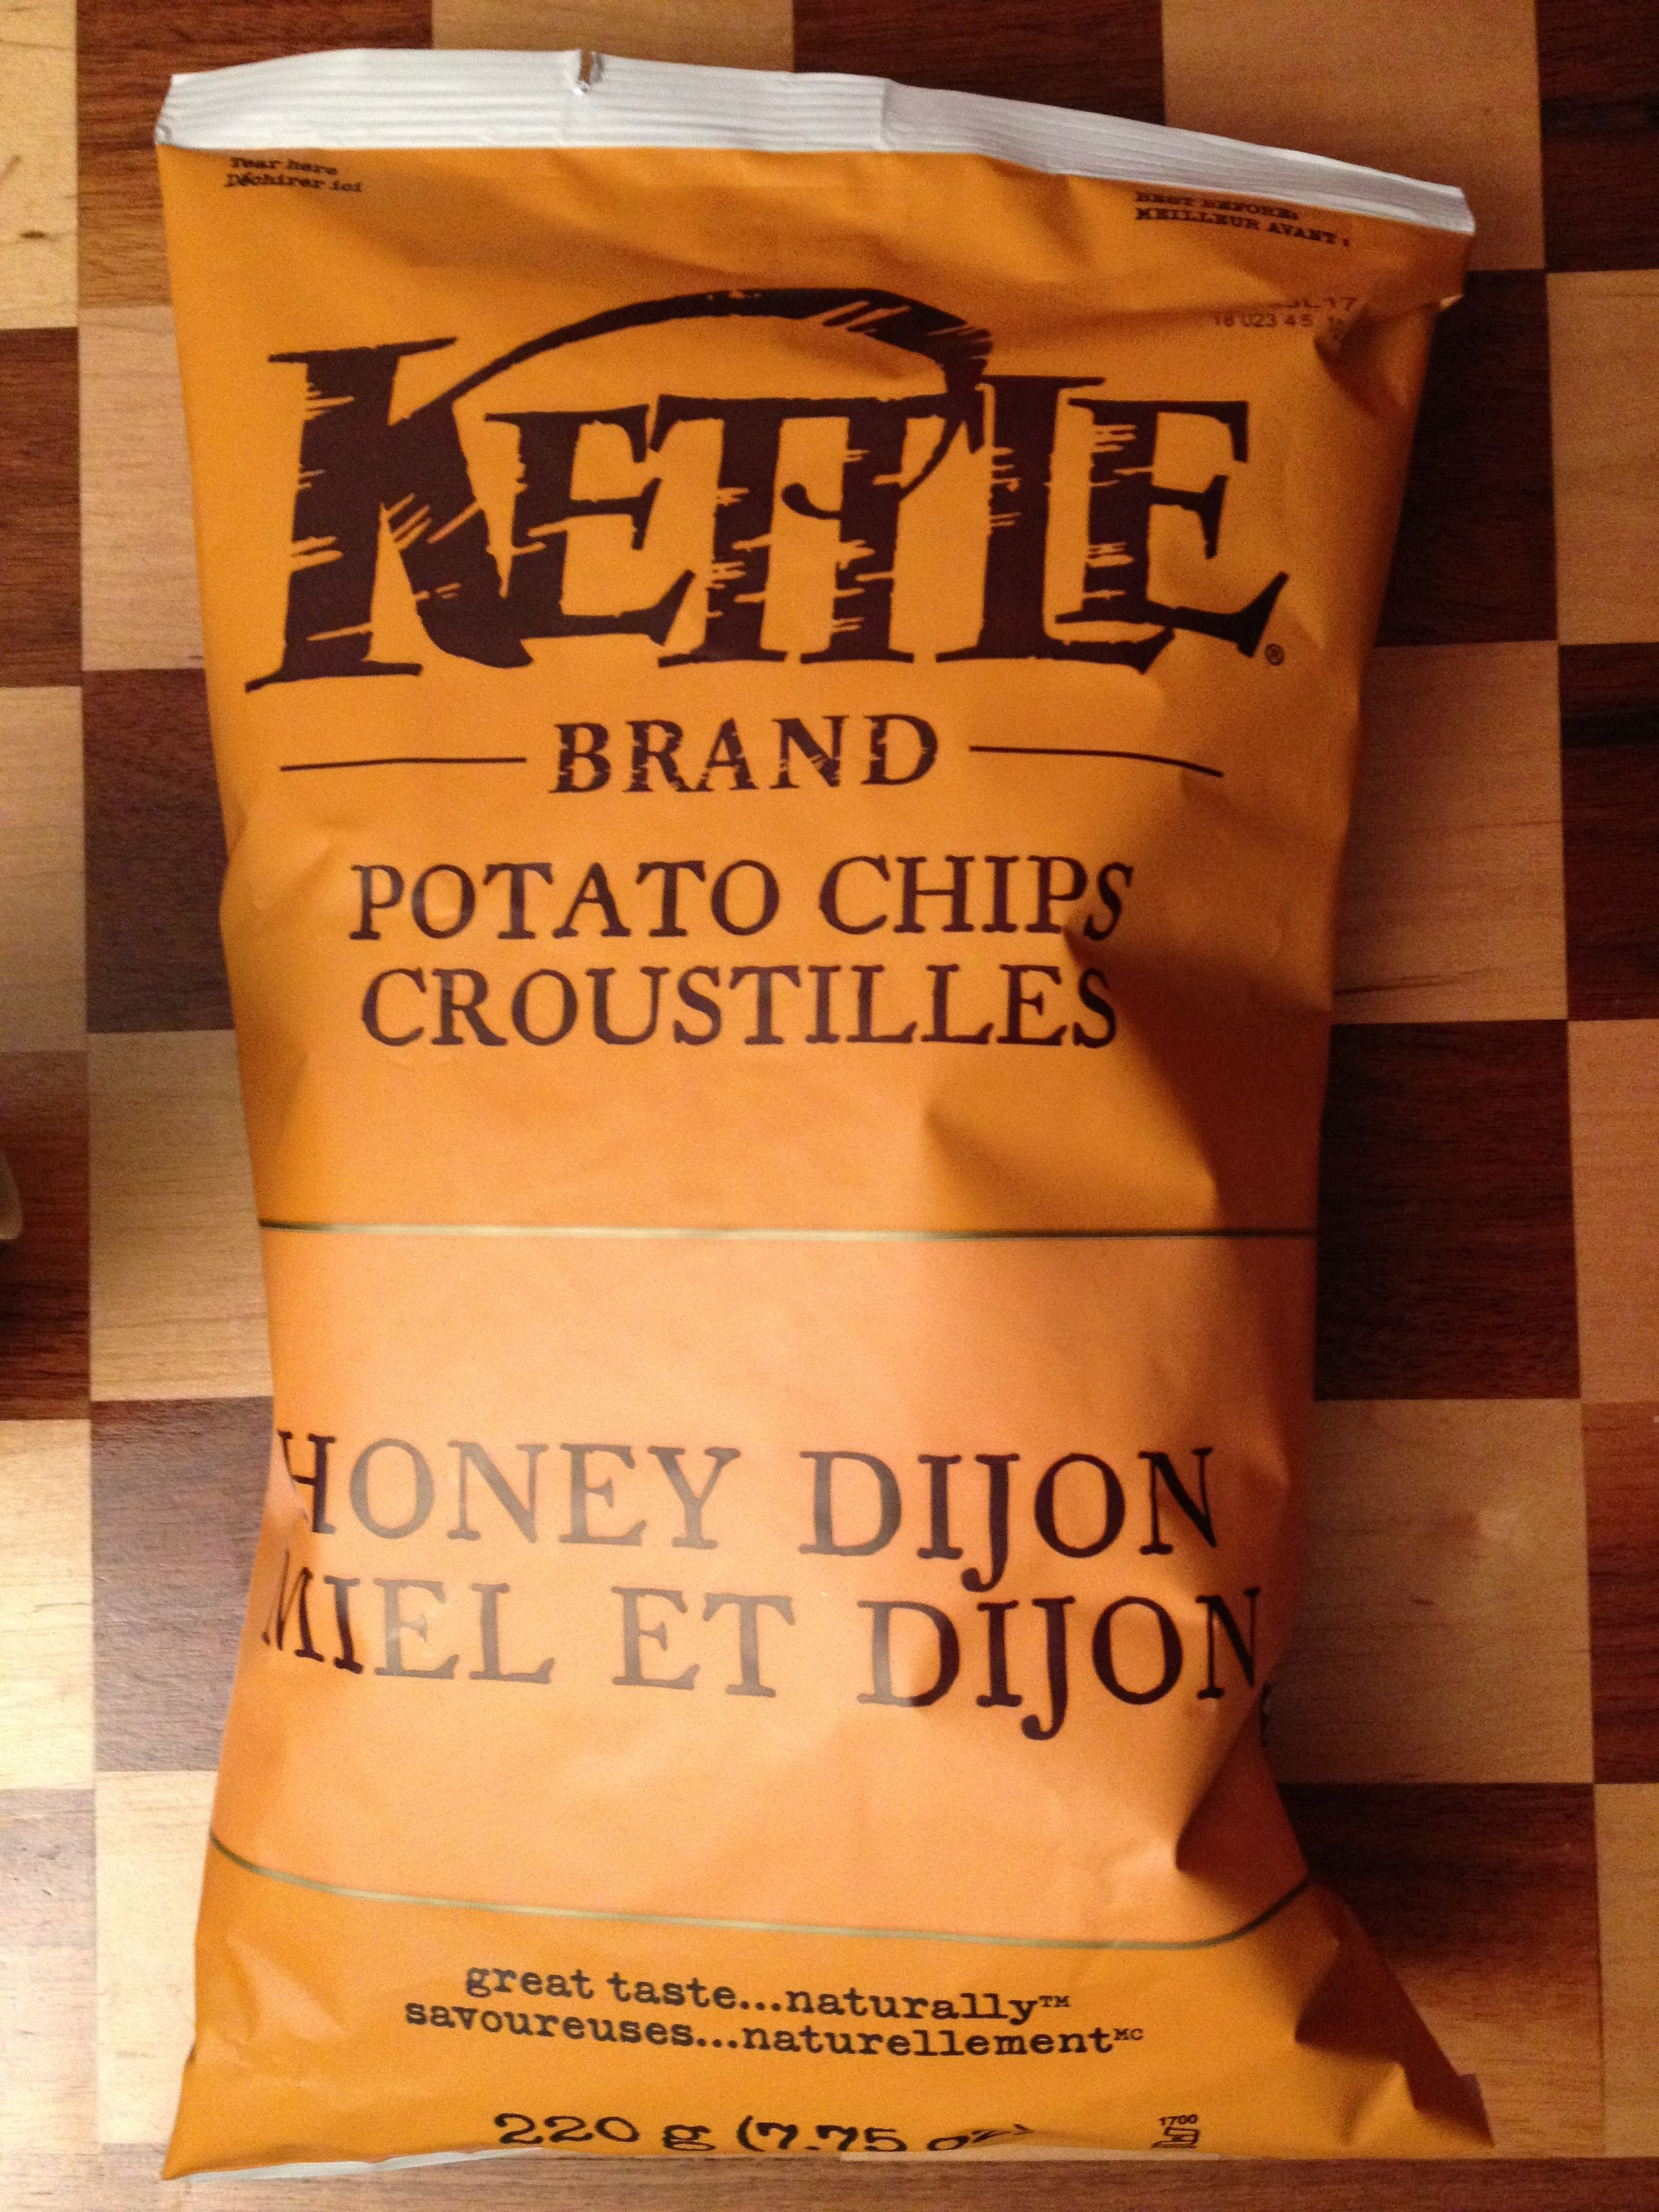 A chipaholic tries a new flavour!